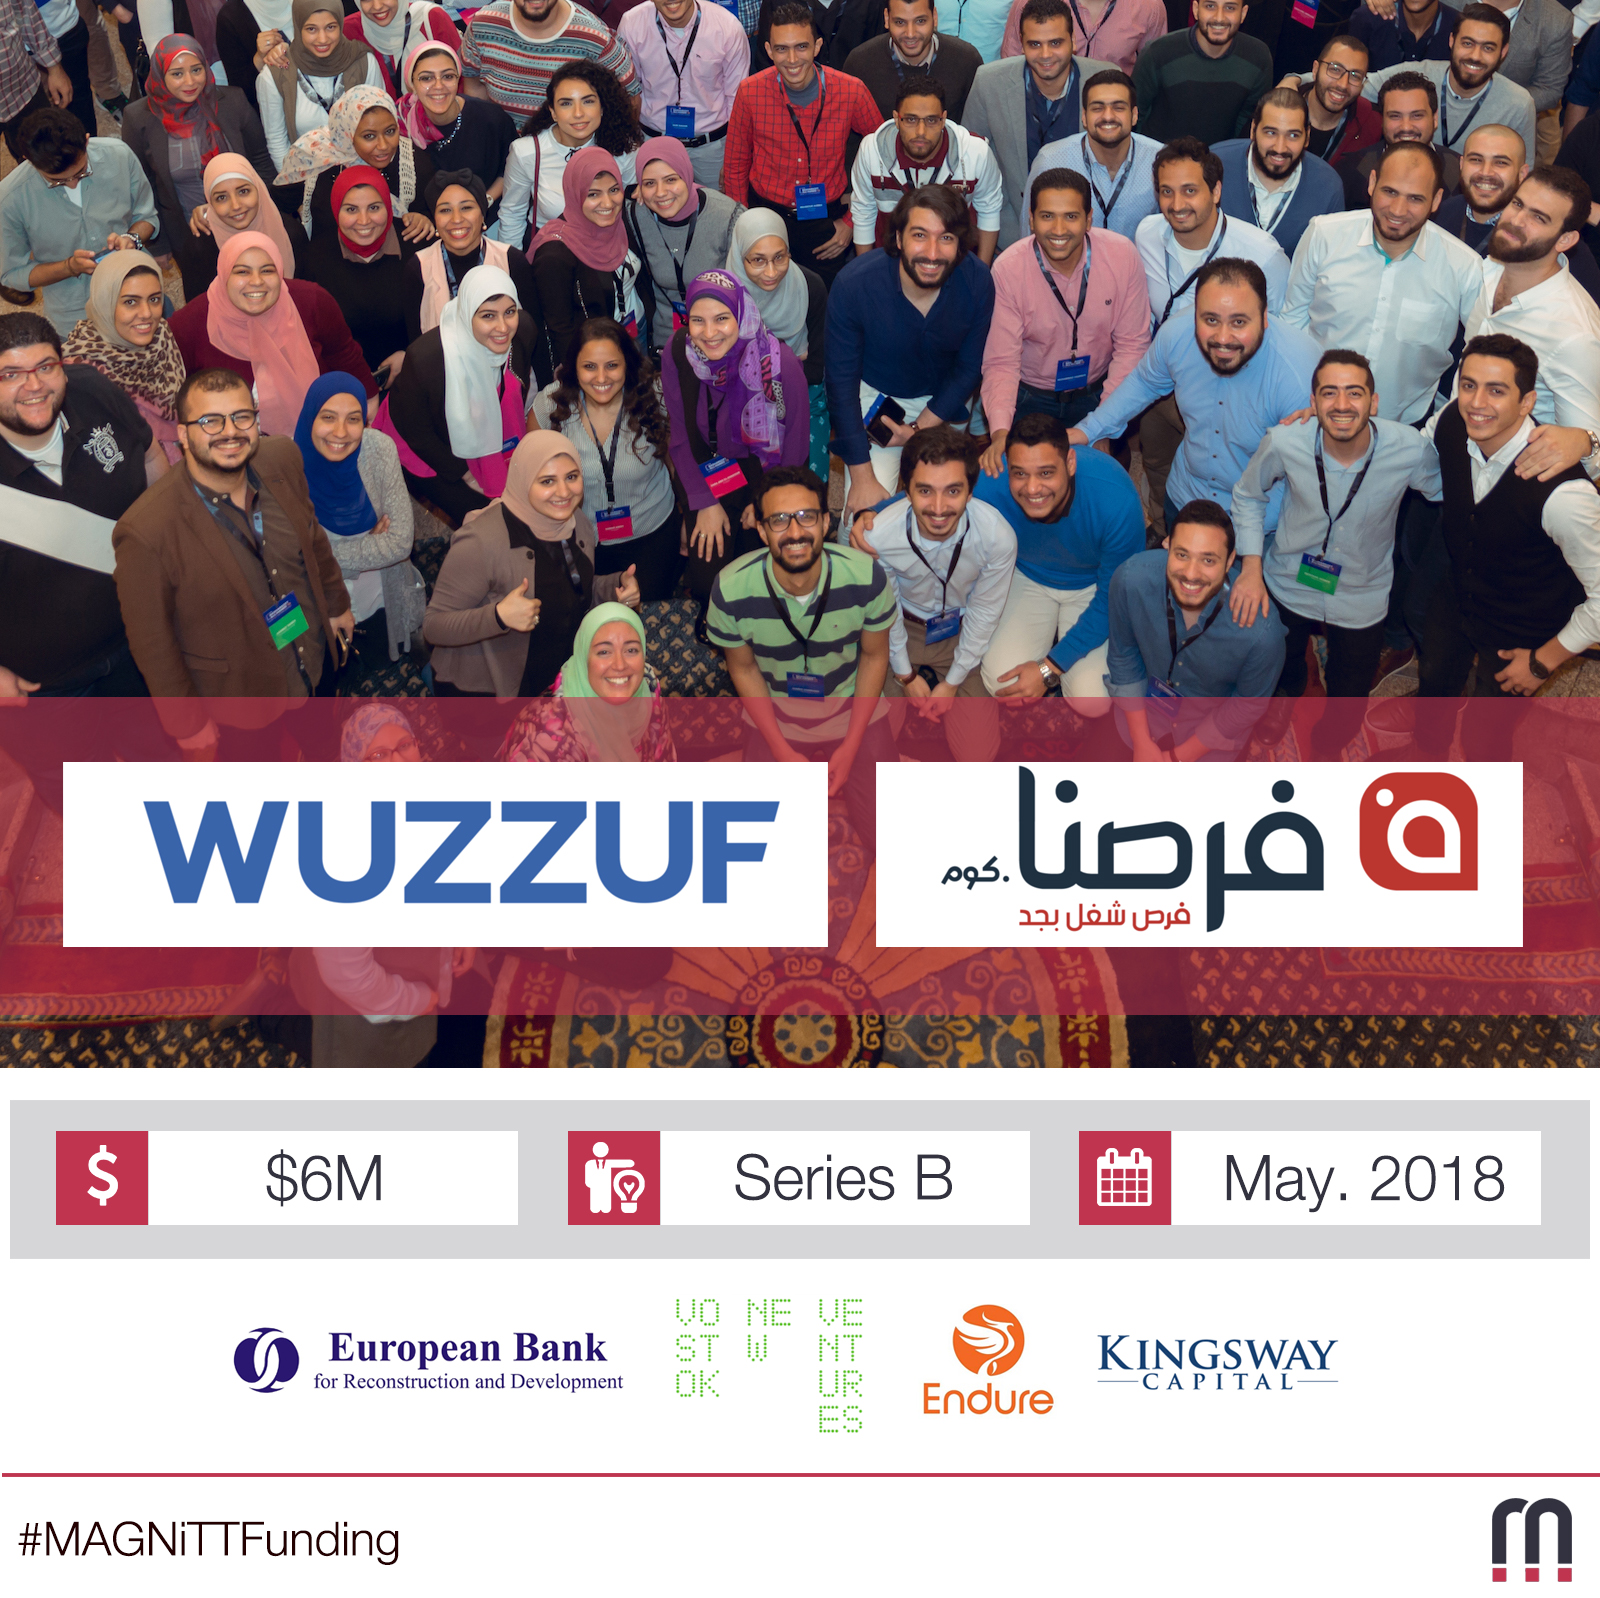 Egypt-based recruiting platforms Wuzzuf and Forasna raise Egypt's largest Series B Round at $6M